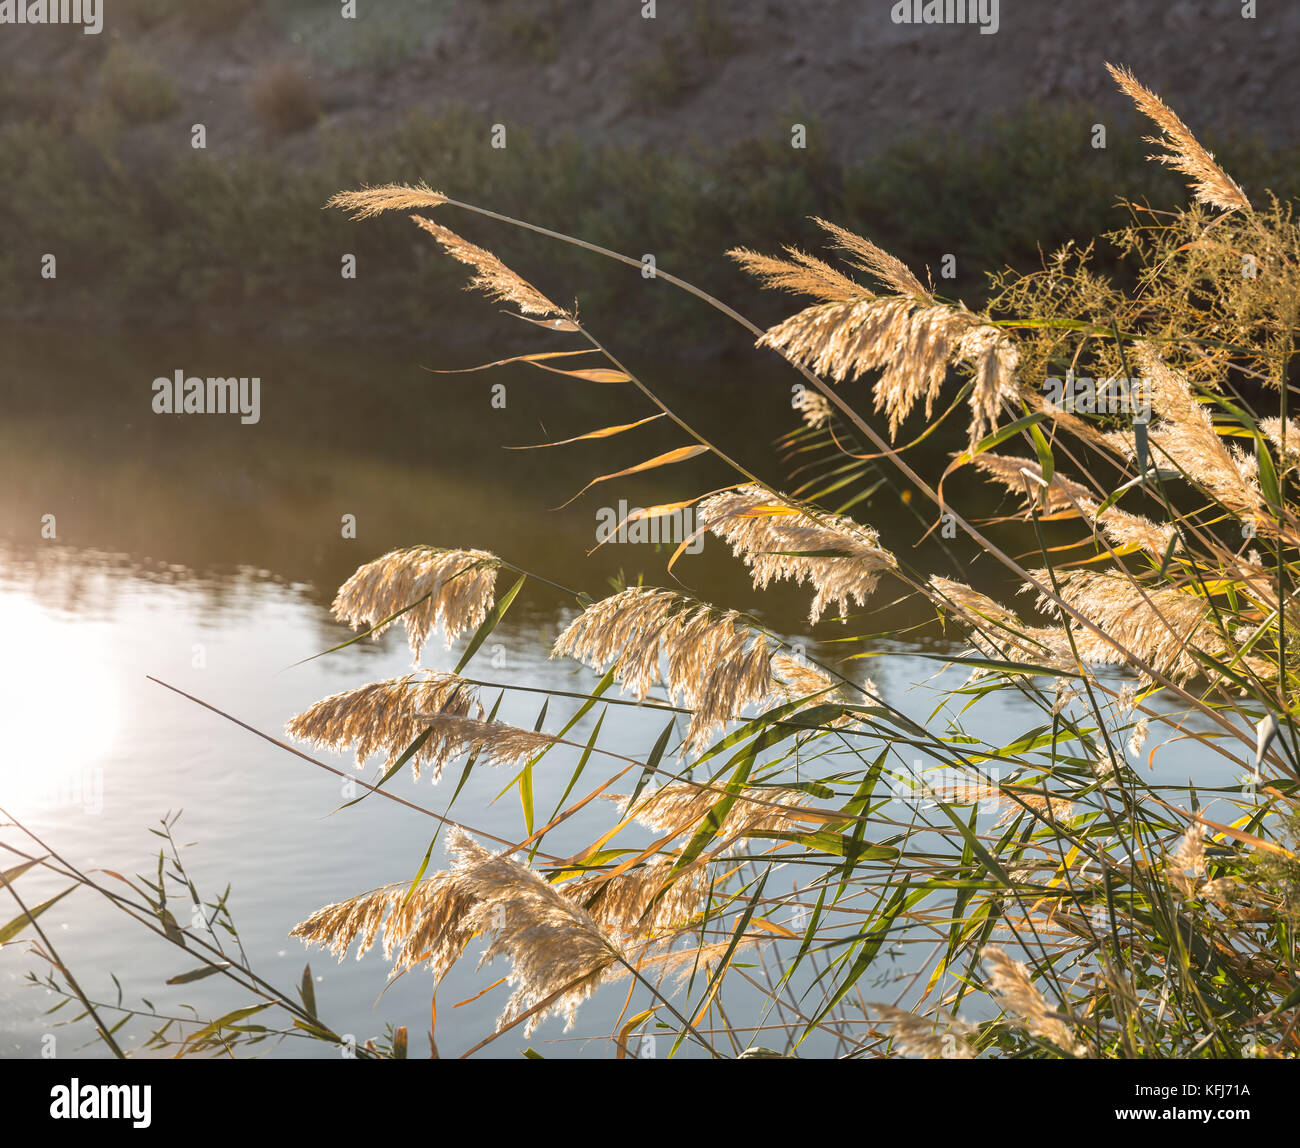 Reed sunlit bends over the surface of the water - Stock Image